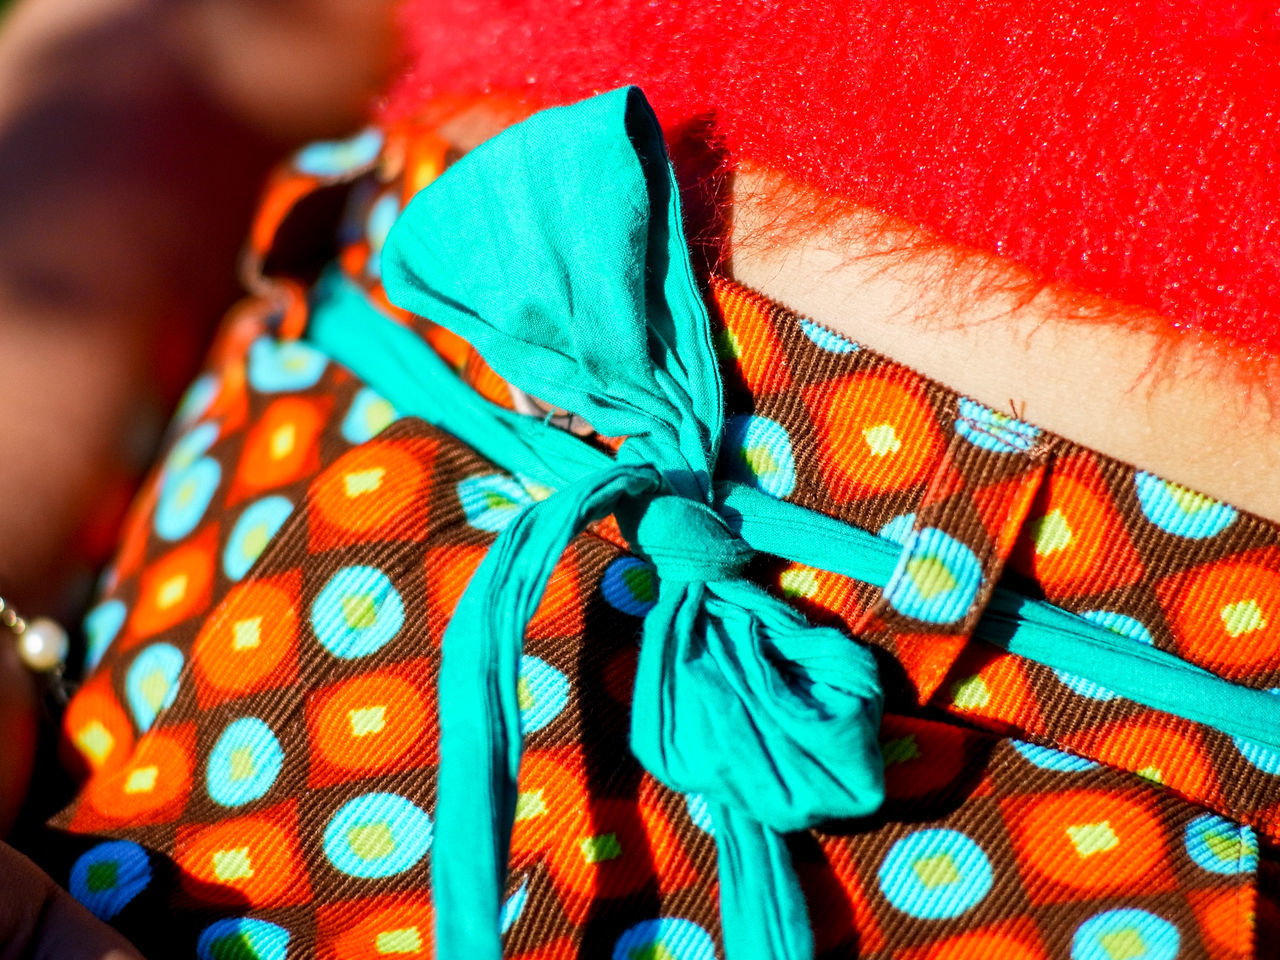 textile, close-up, indoors, pattern, no people, focus on foreground, multi colored, high angle view, clothing, blue, still life, fashion, body part, day, material, red, green color, turquoise colored, floral pattern